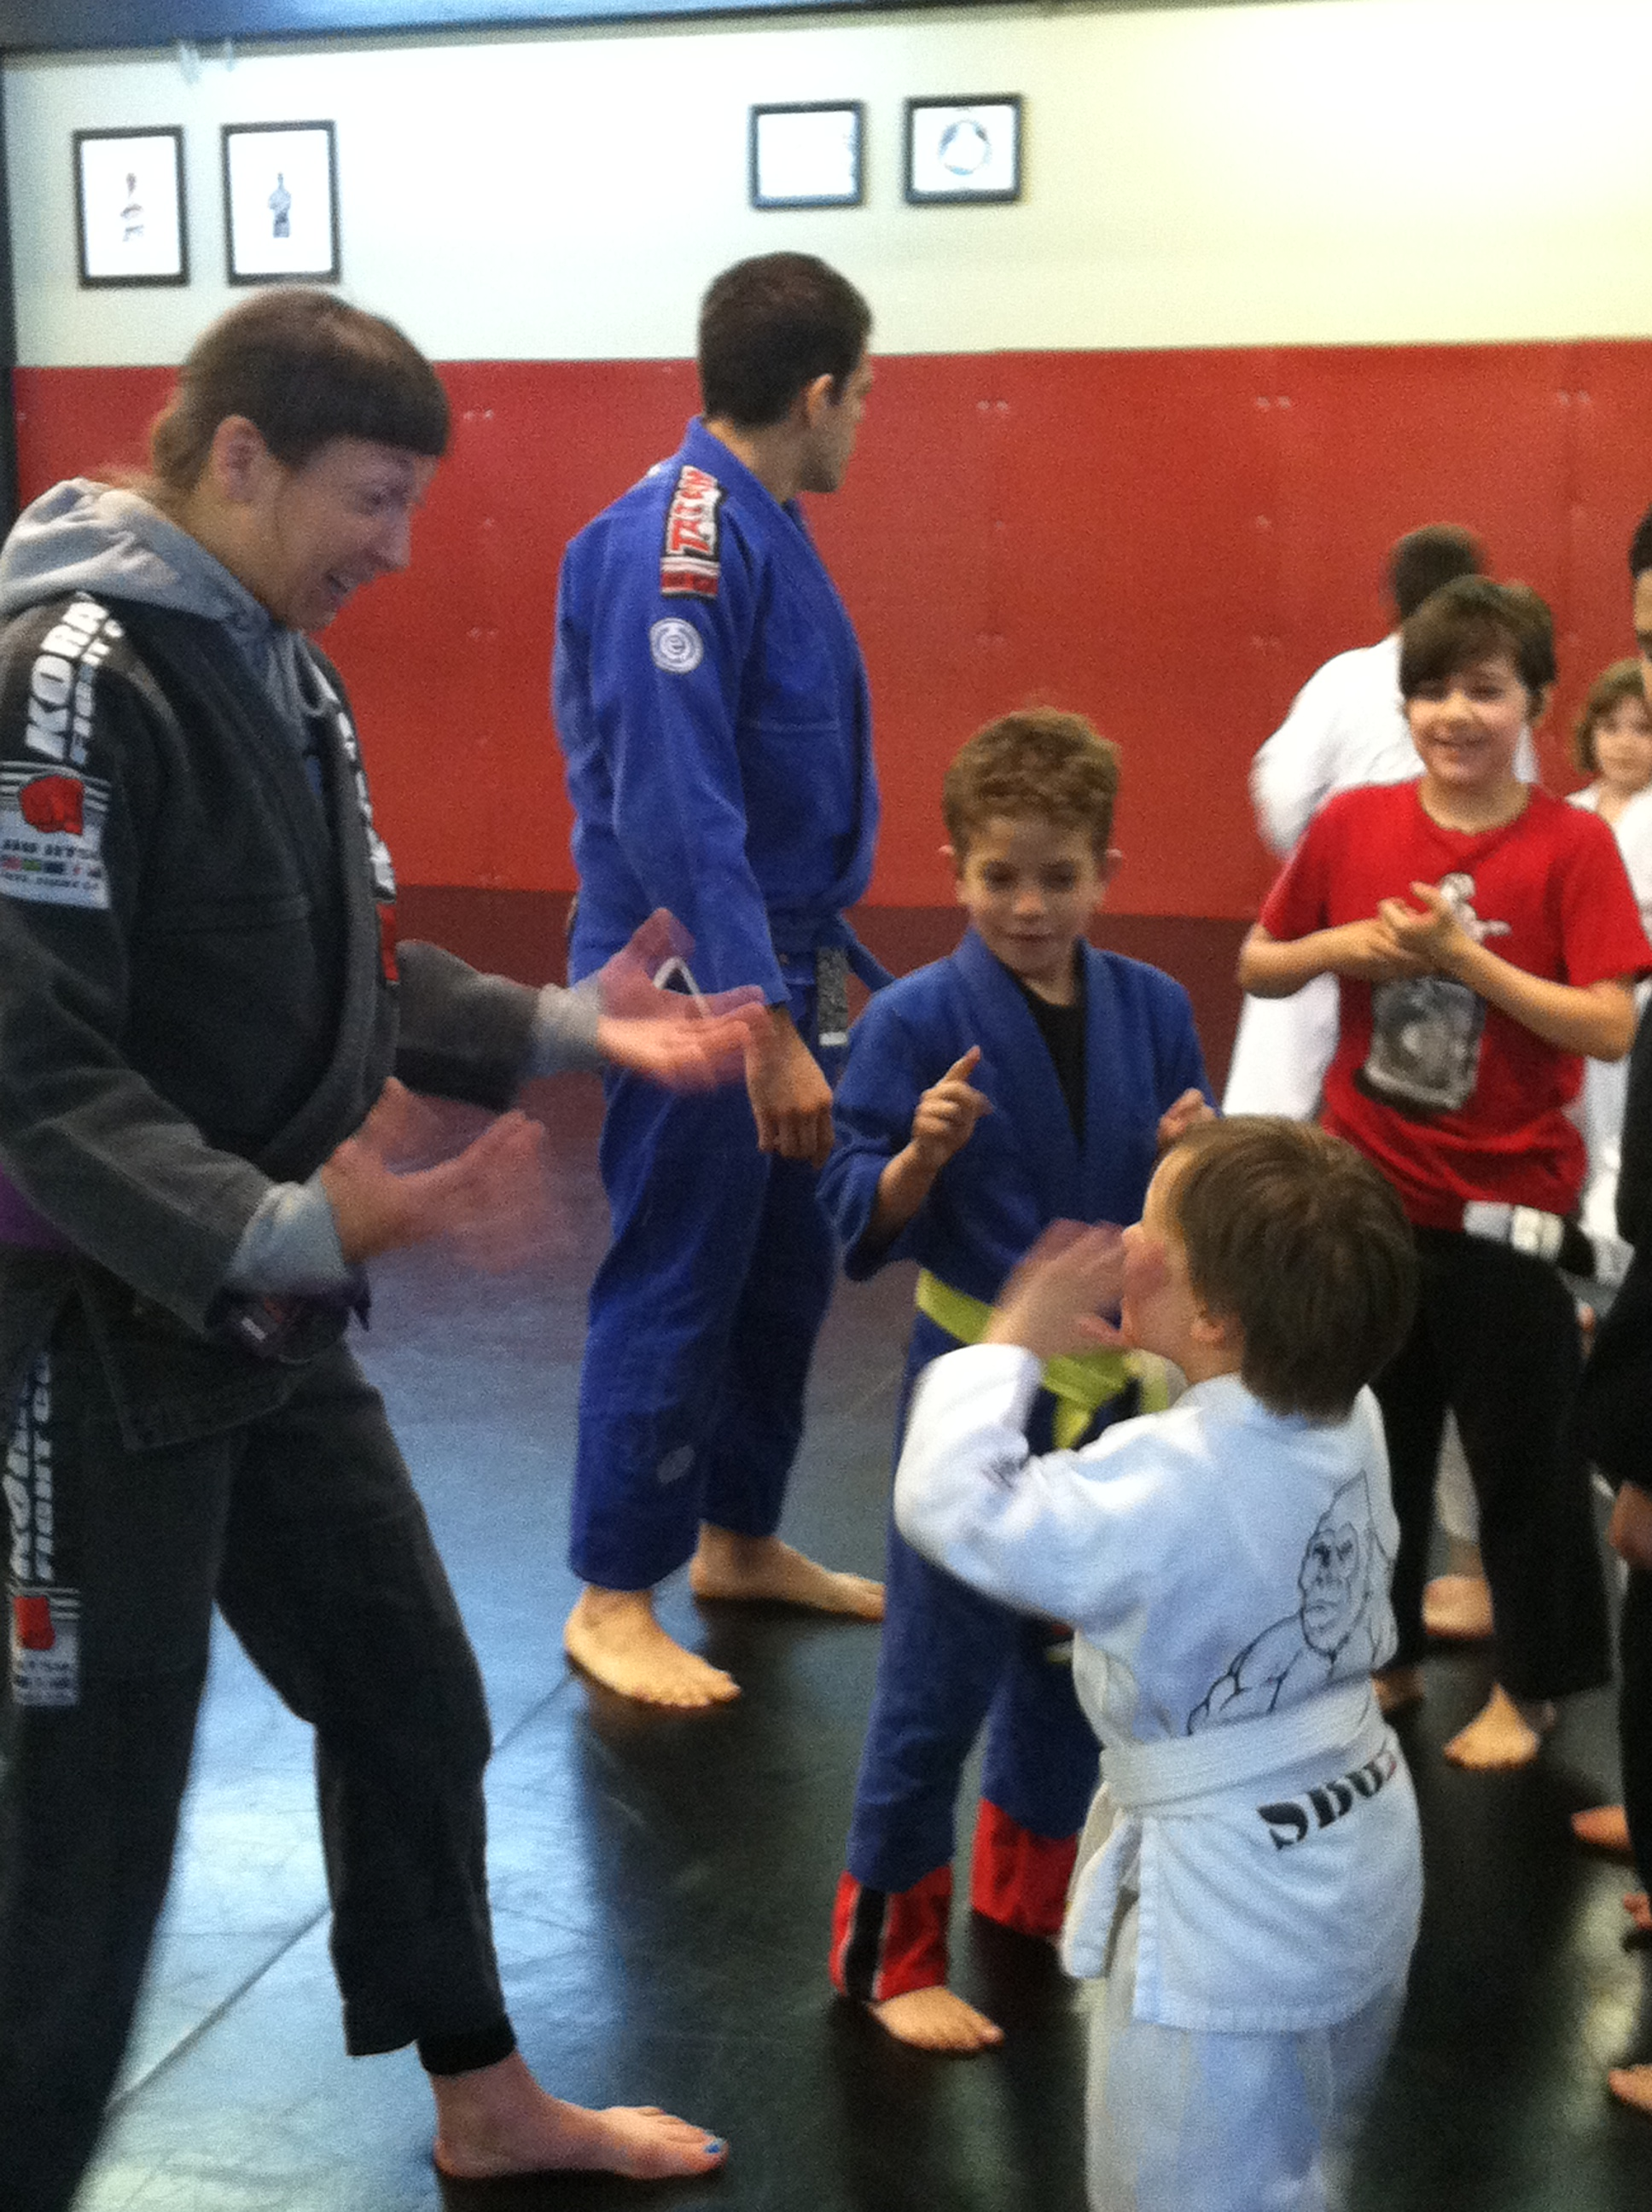 Coaches having fun with the kids in martial arts class.